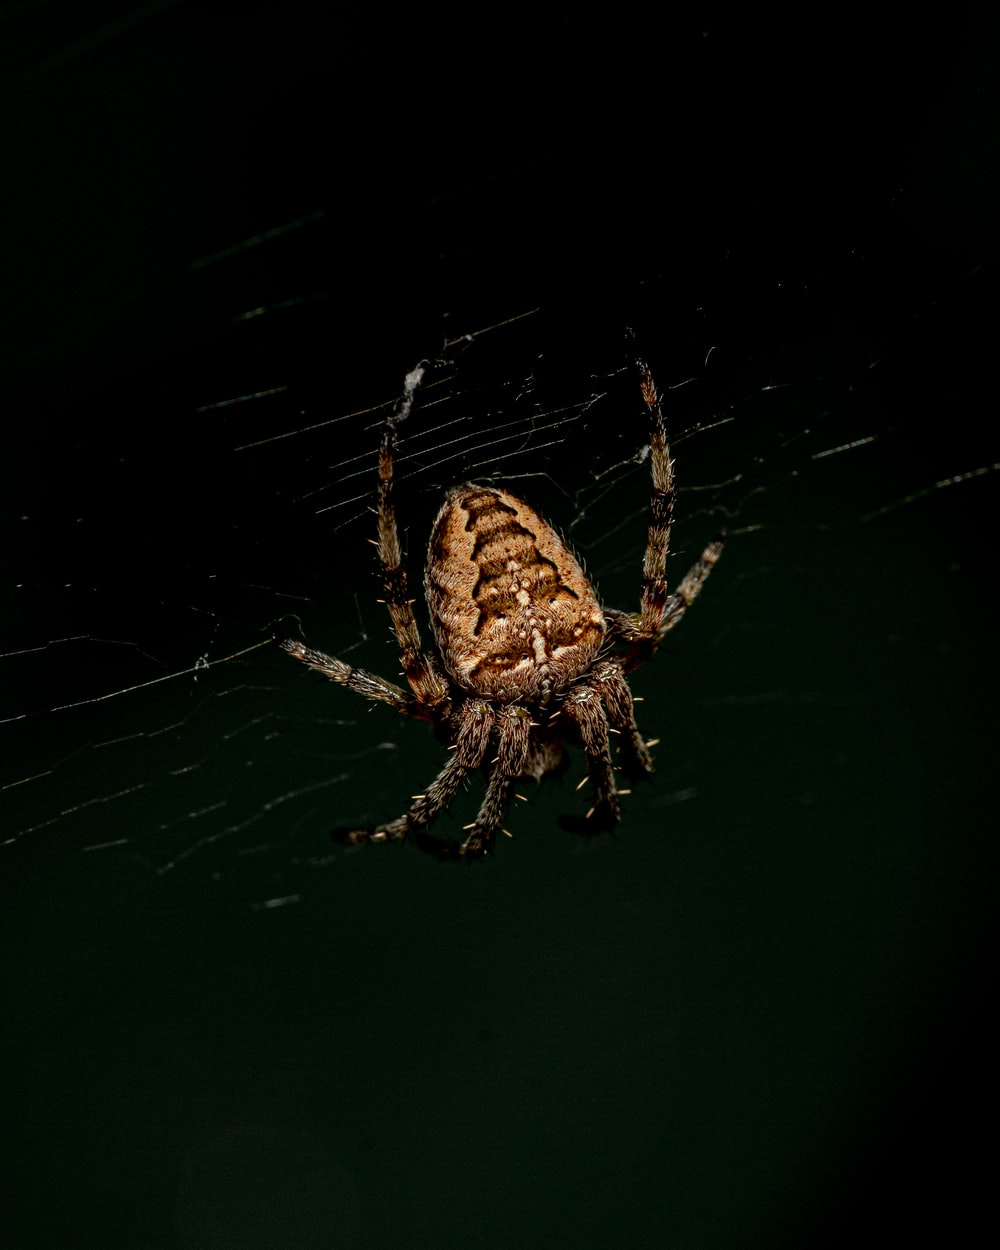 brown and black barn spider close-up photography